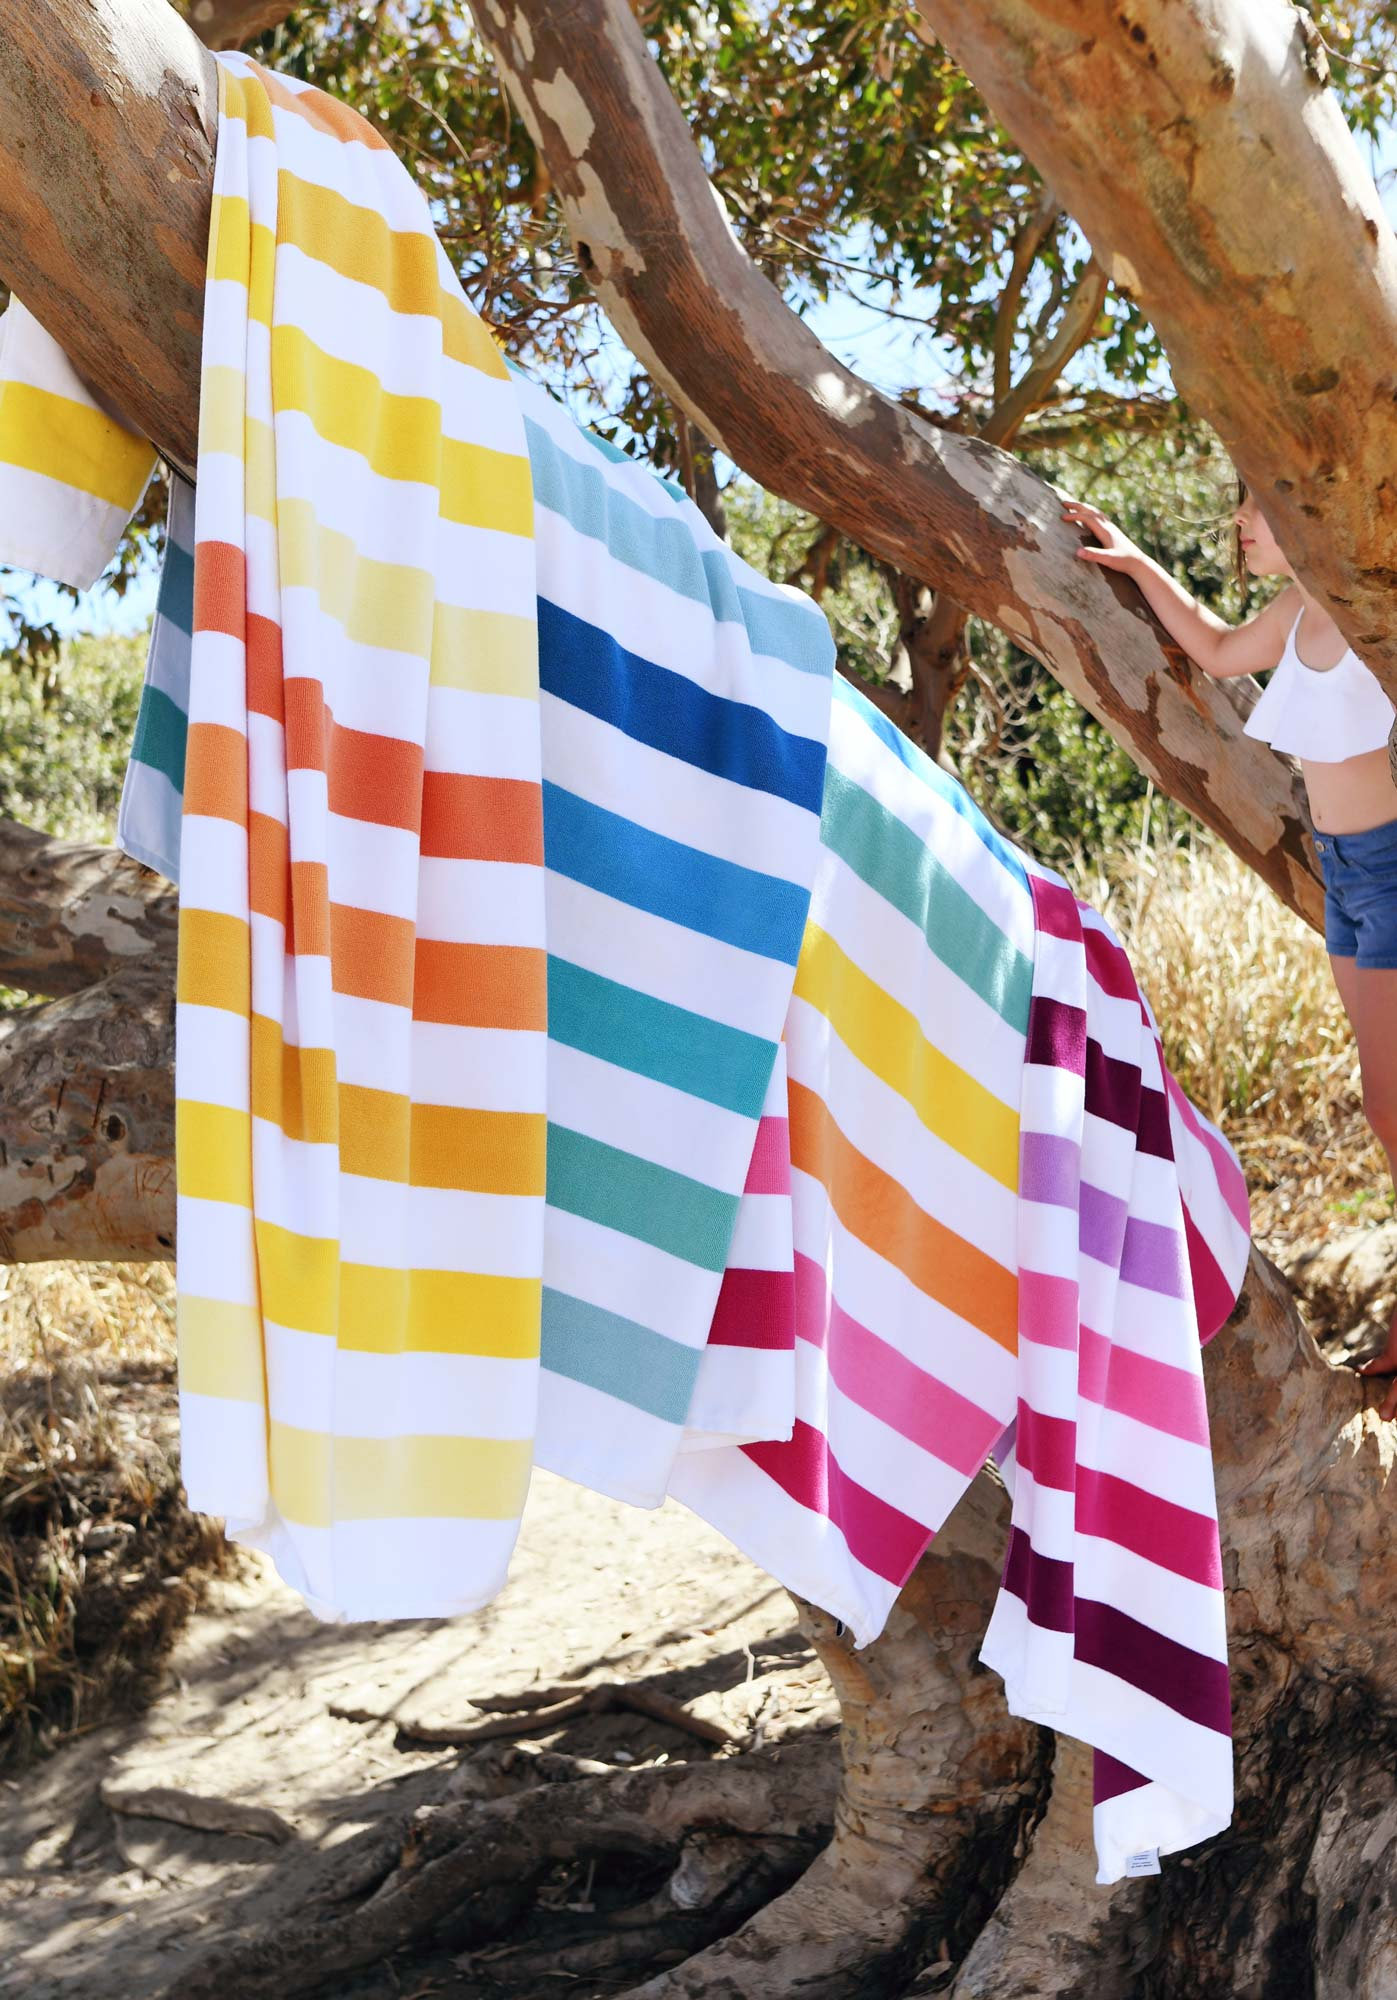 Our Solana Cabana collection—colorful gradient luxury beach towels.